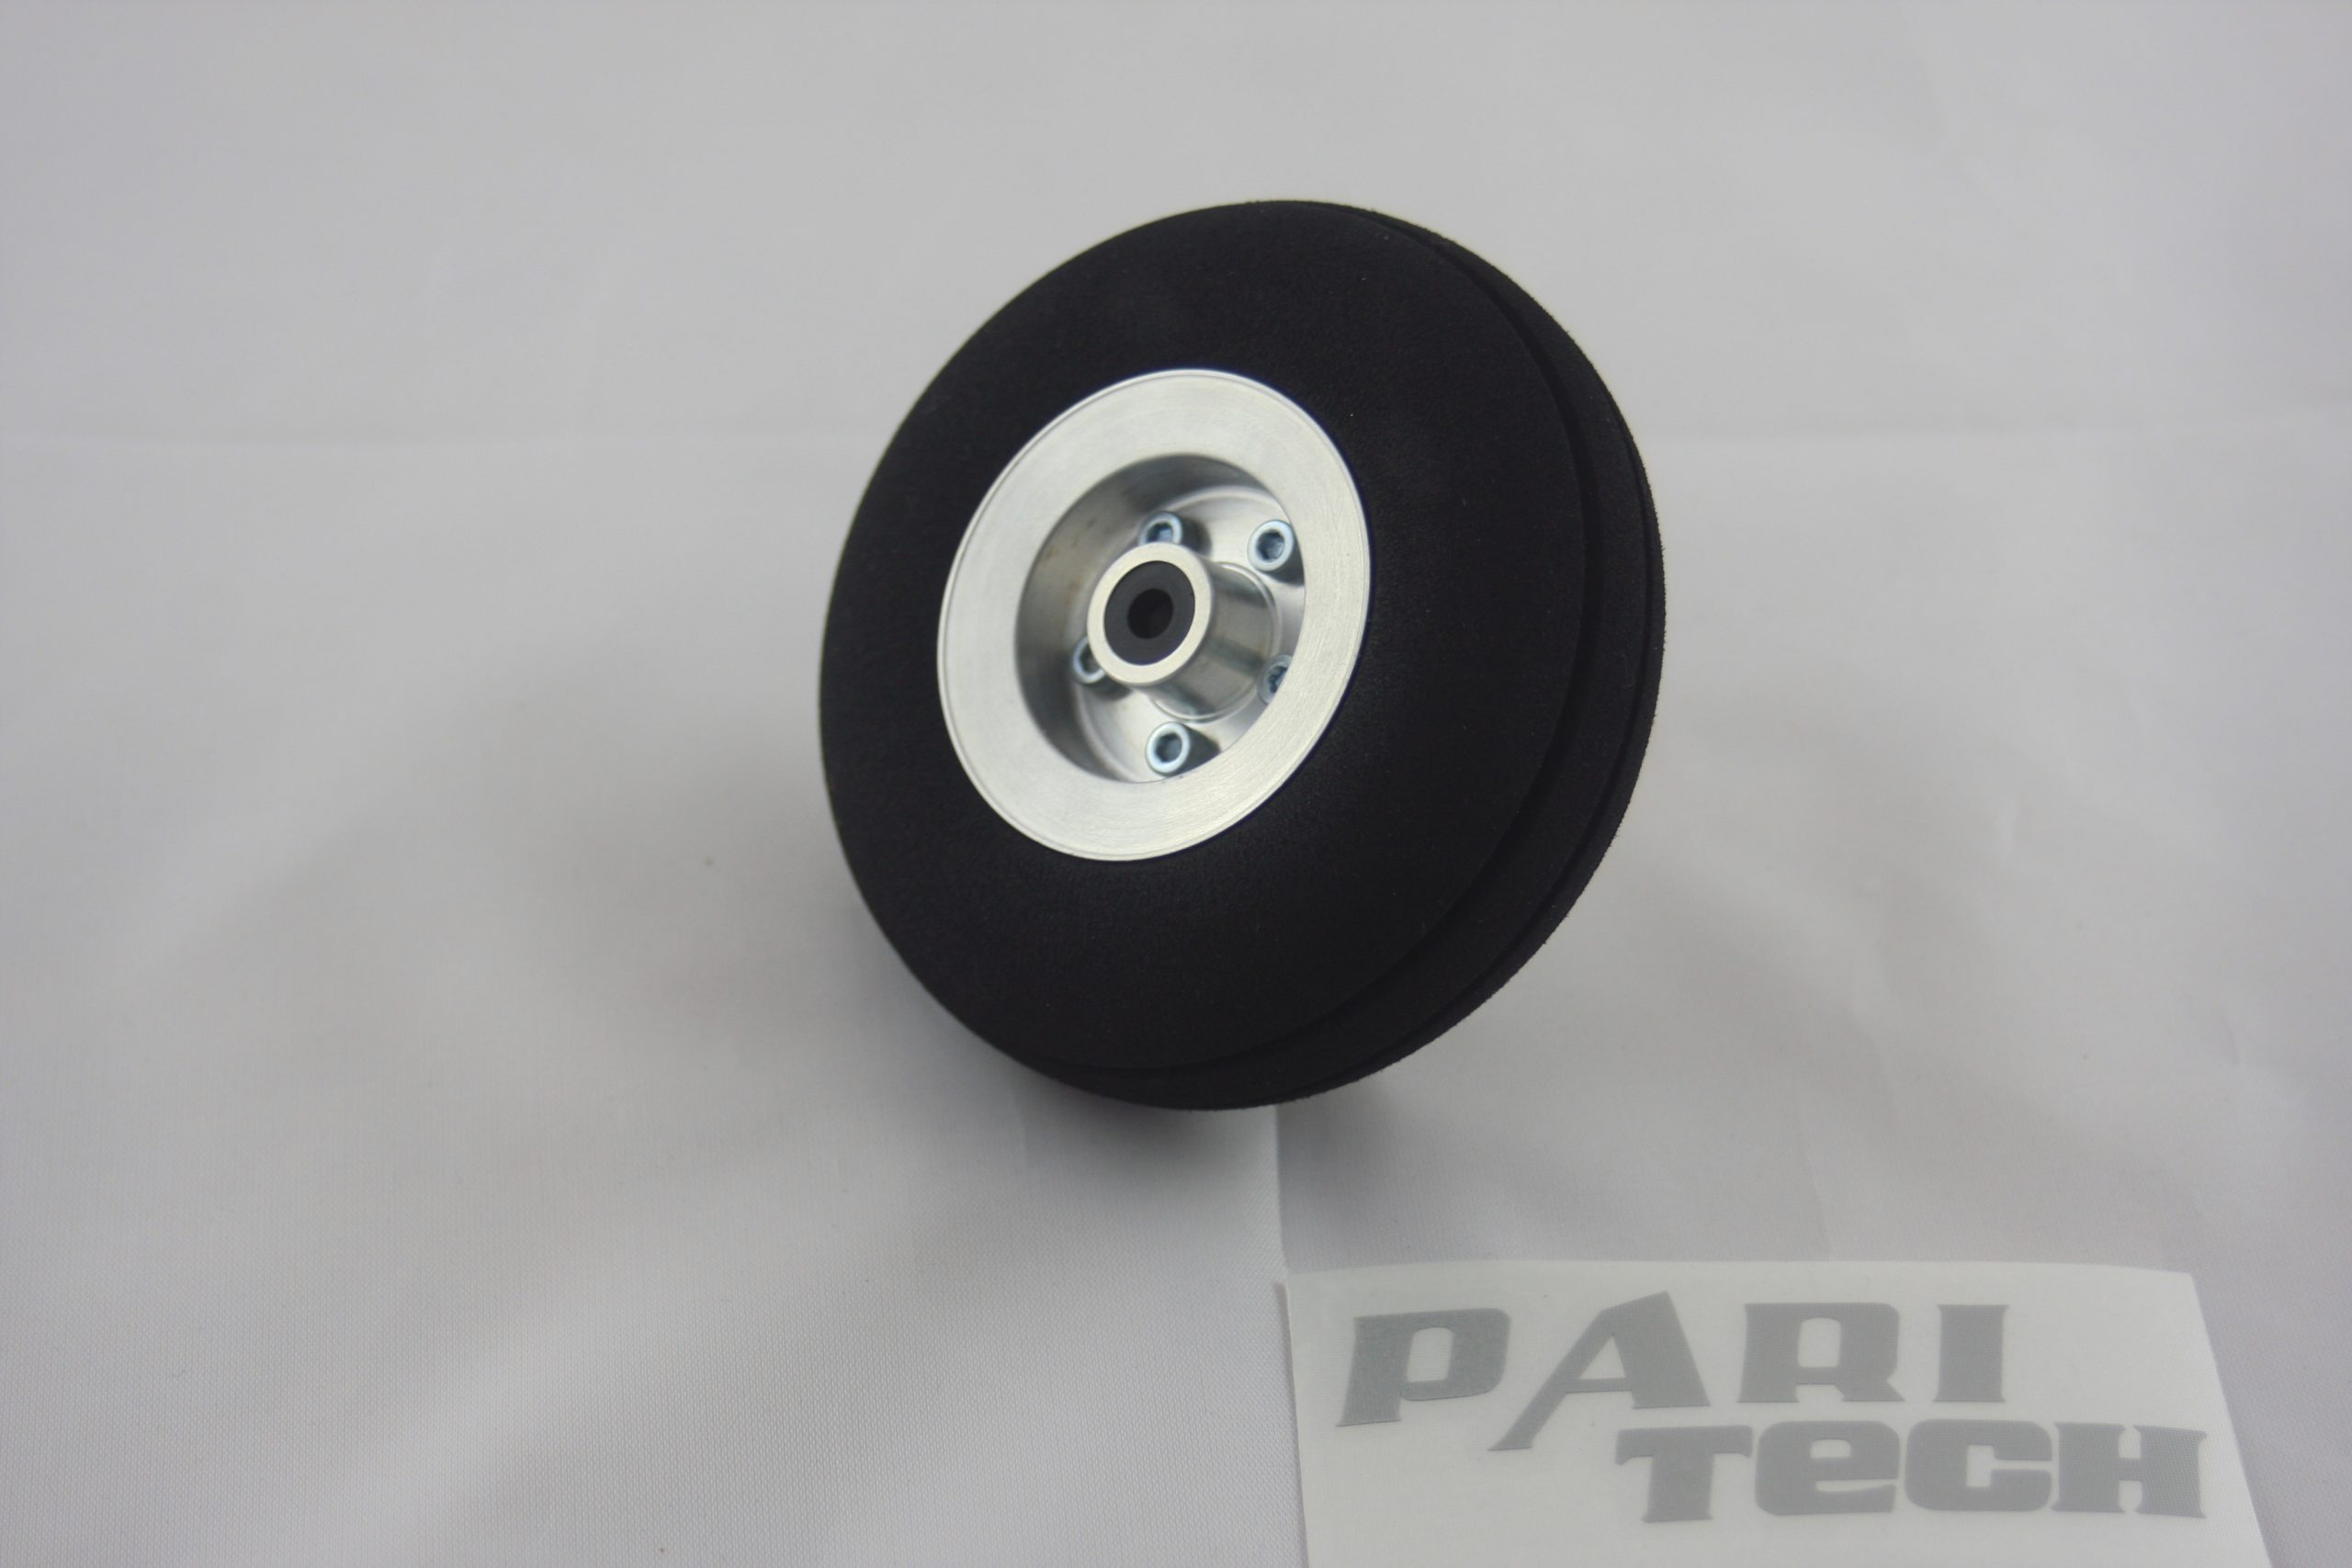 100 mm wheel with rim made of aluminium